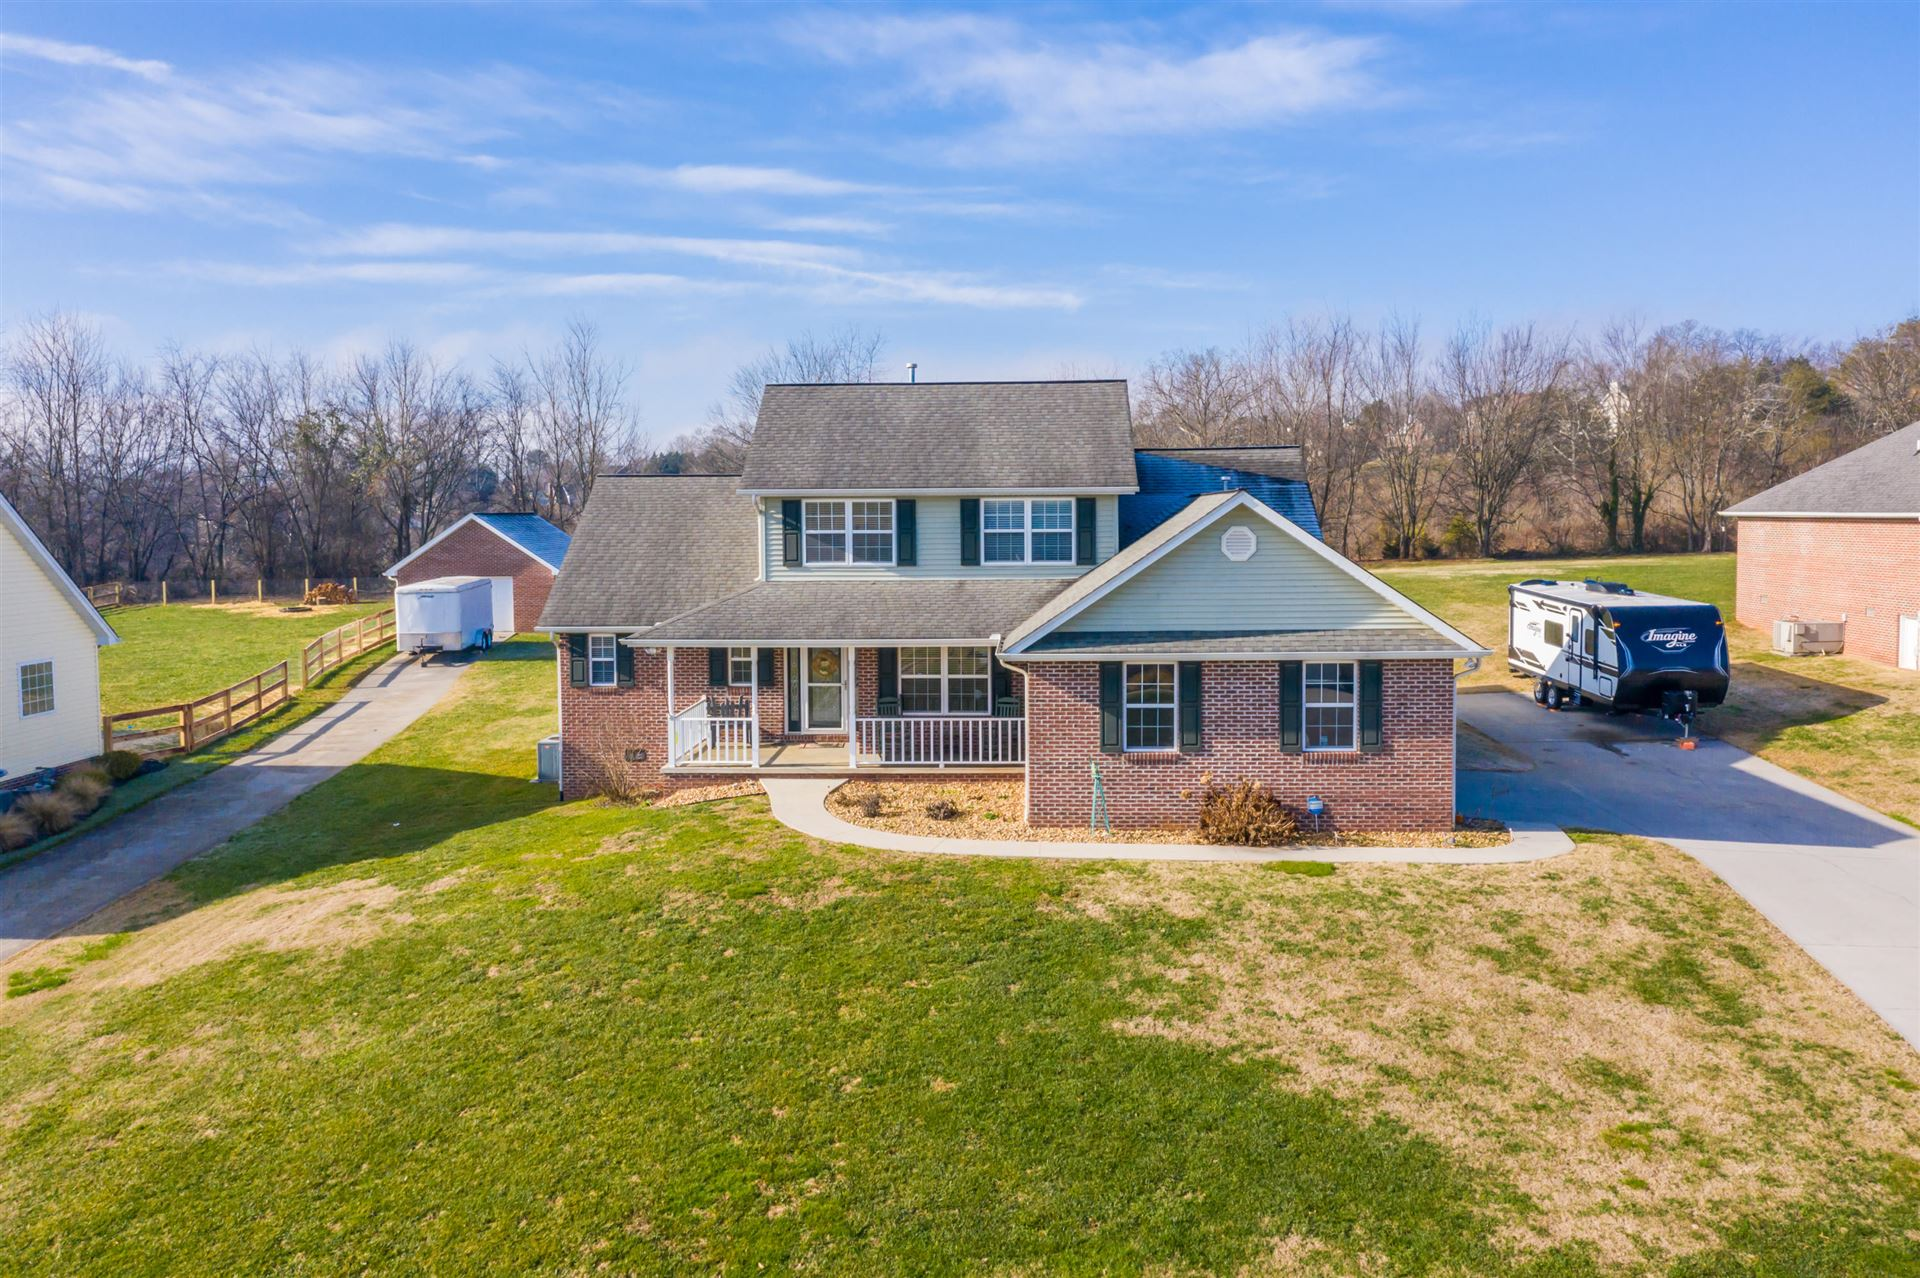 Photo of 949 Carter Springs Drive, Maryville, TN 37801 (MLS # 1140174)